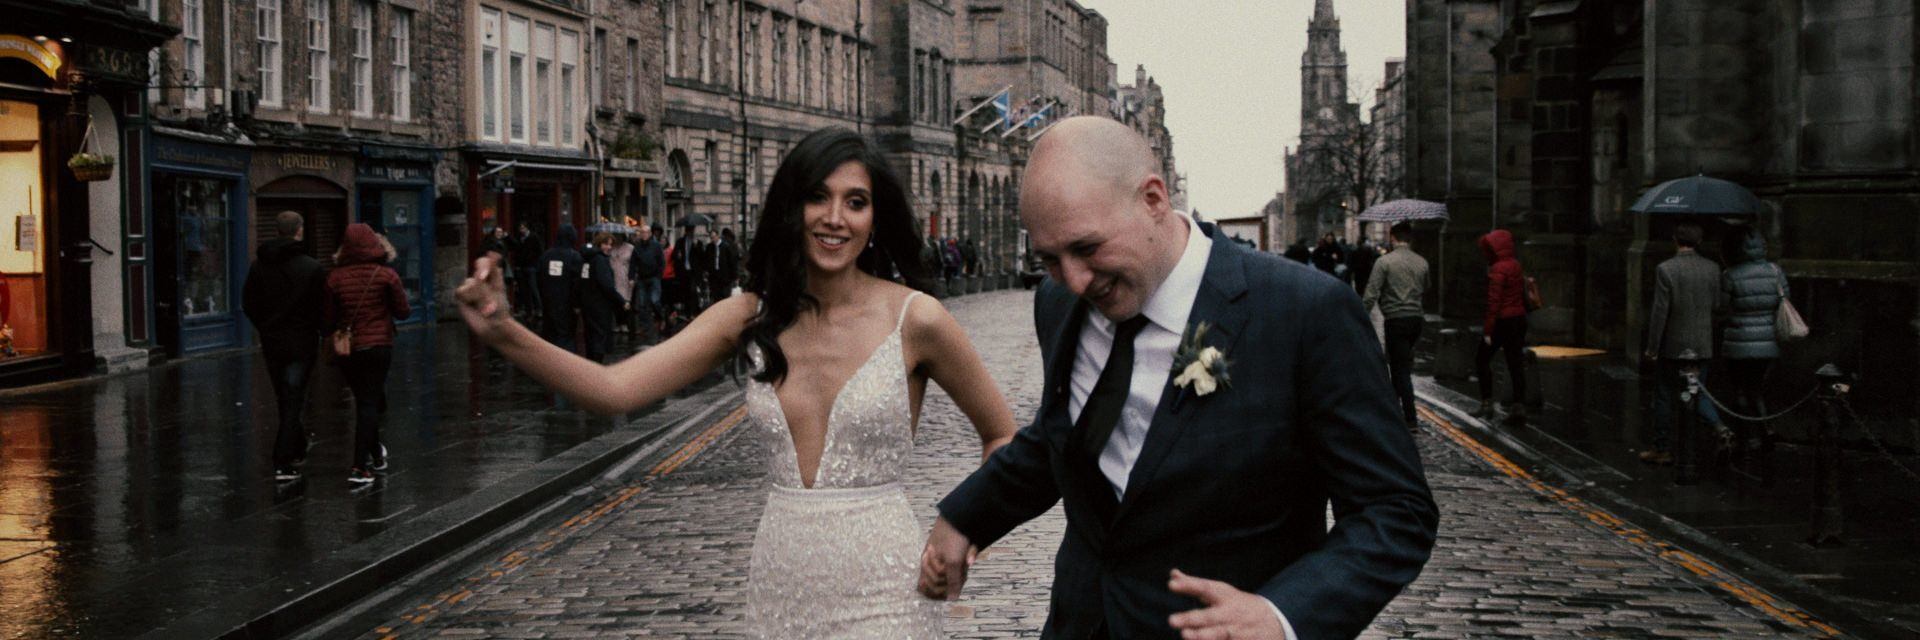 Andros-wedding-videographer-cinemate-films-04